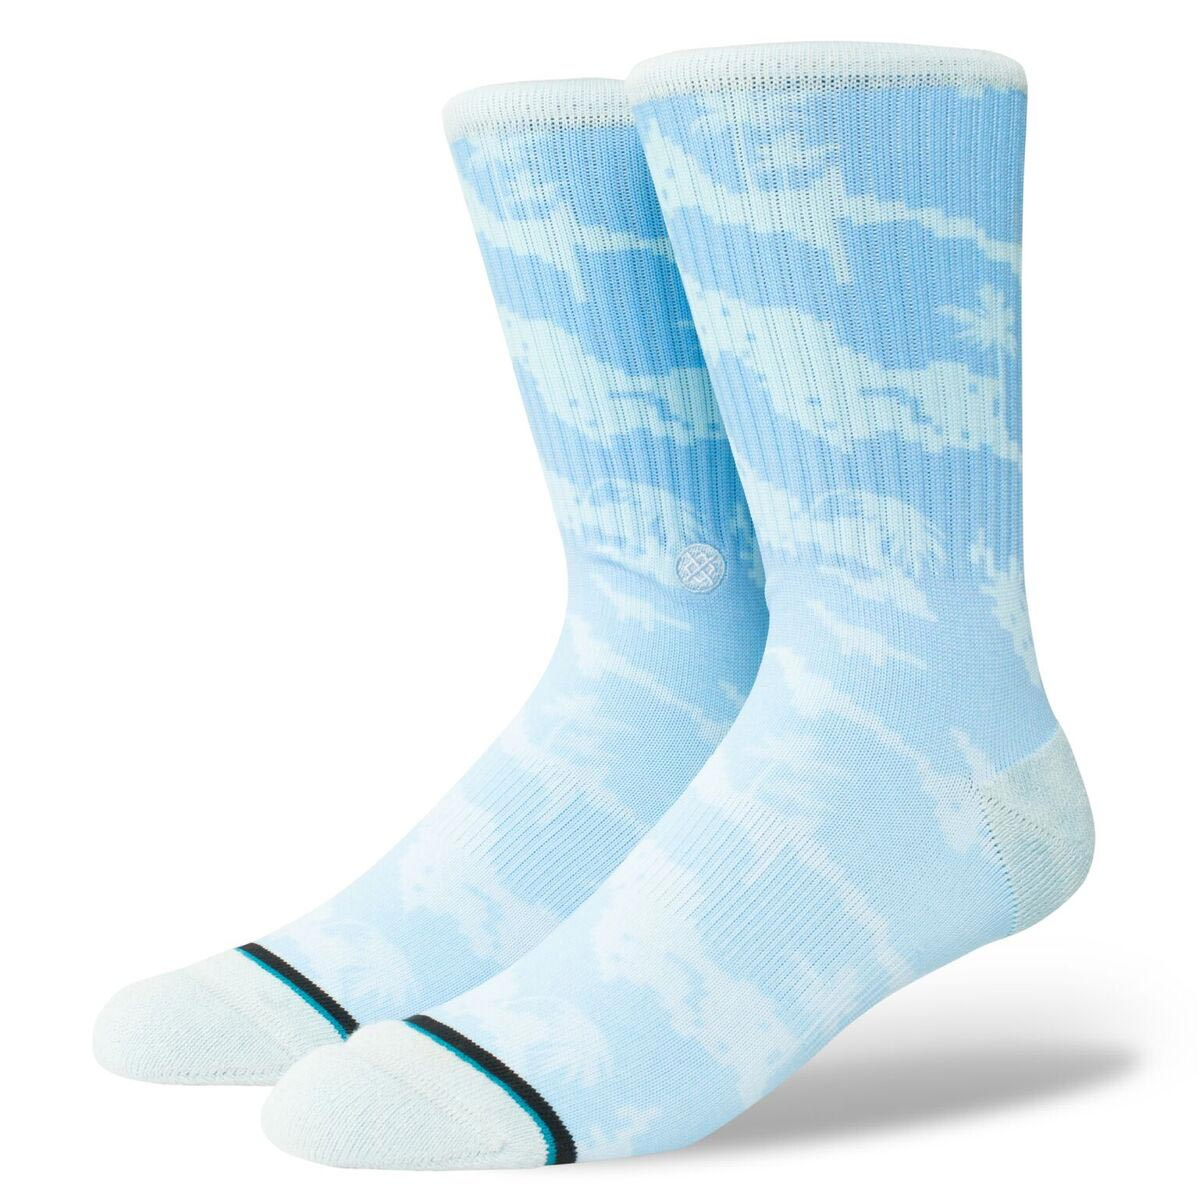 Image of Stance Socks Pixel Palms